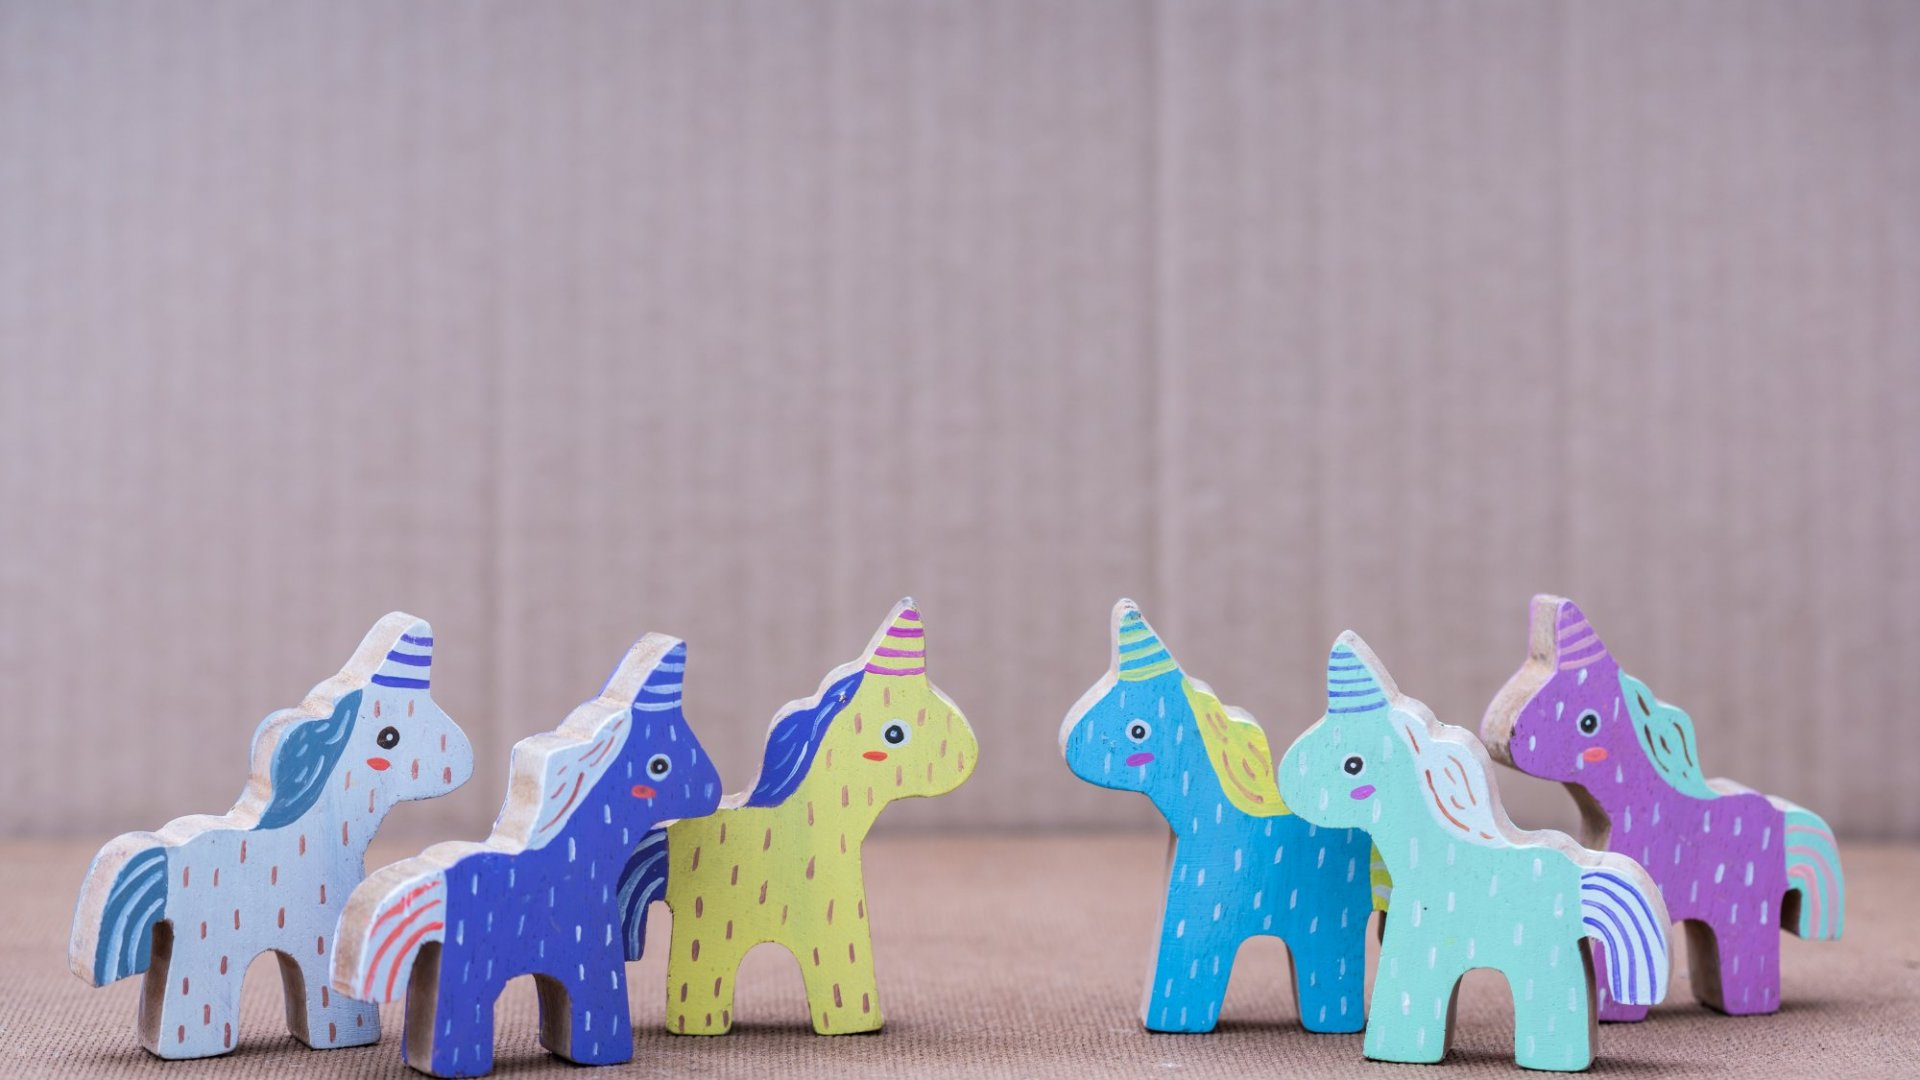 7 Startups Joined the 'Unicorn Club' in Second Quarter